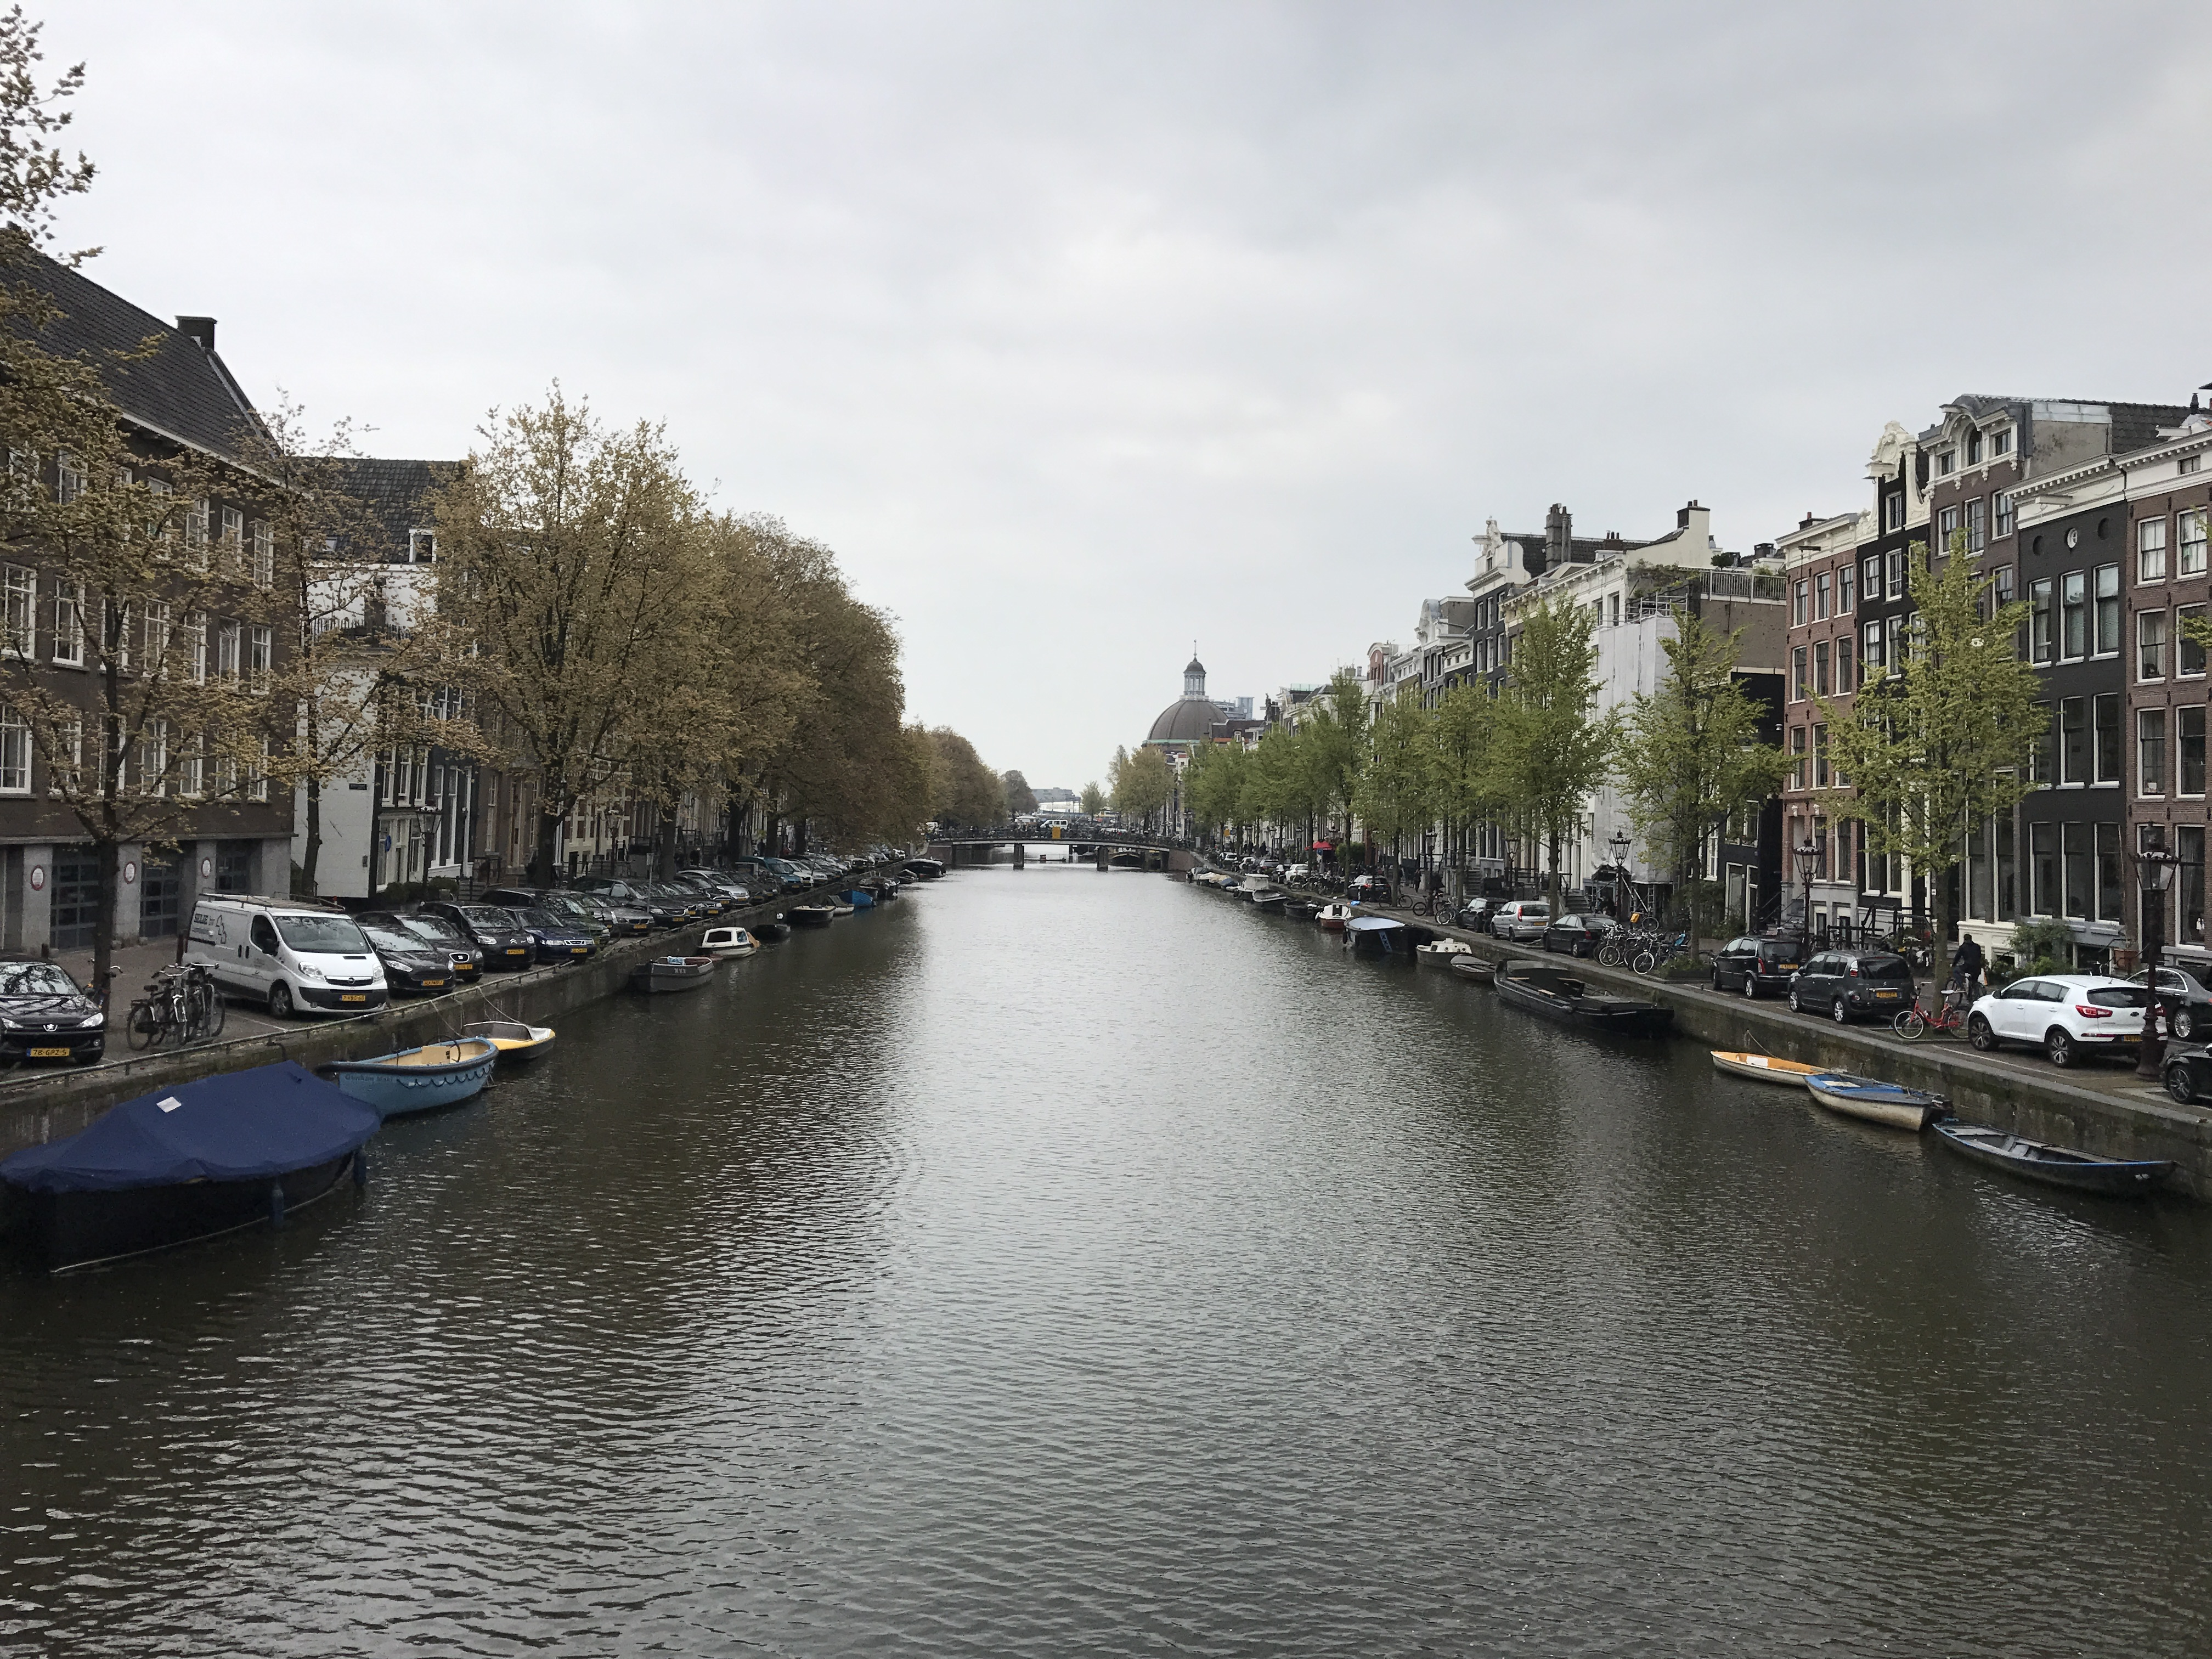 A canal in Amsterdam